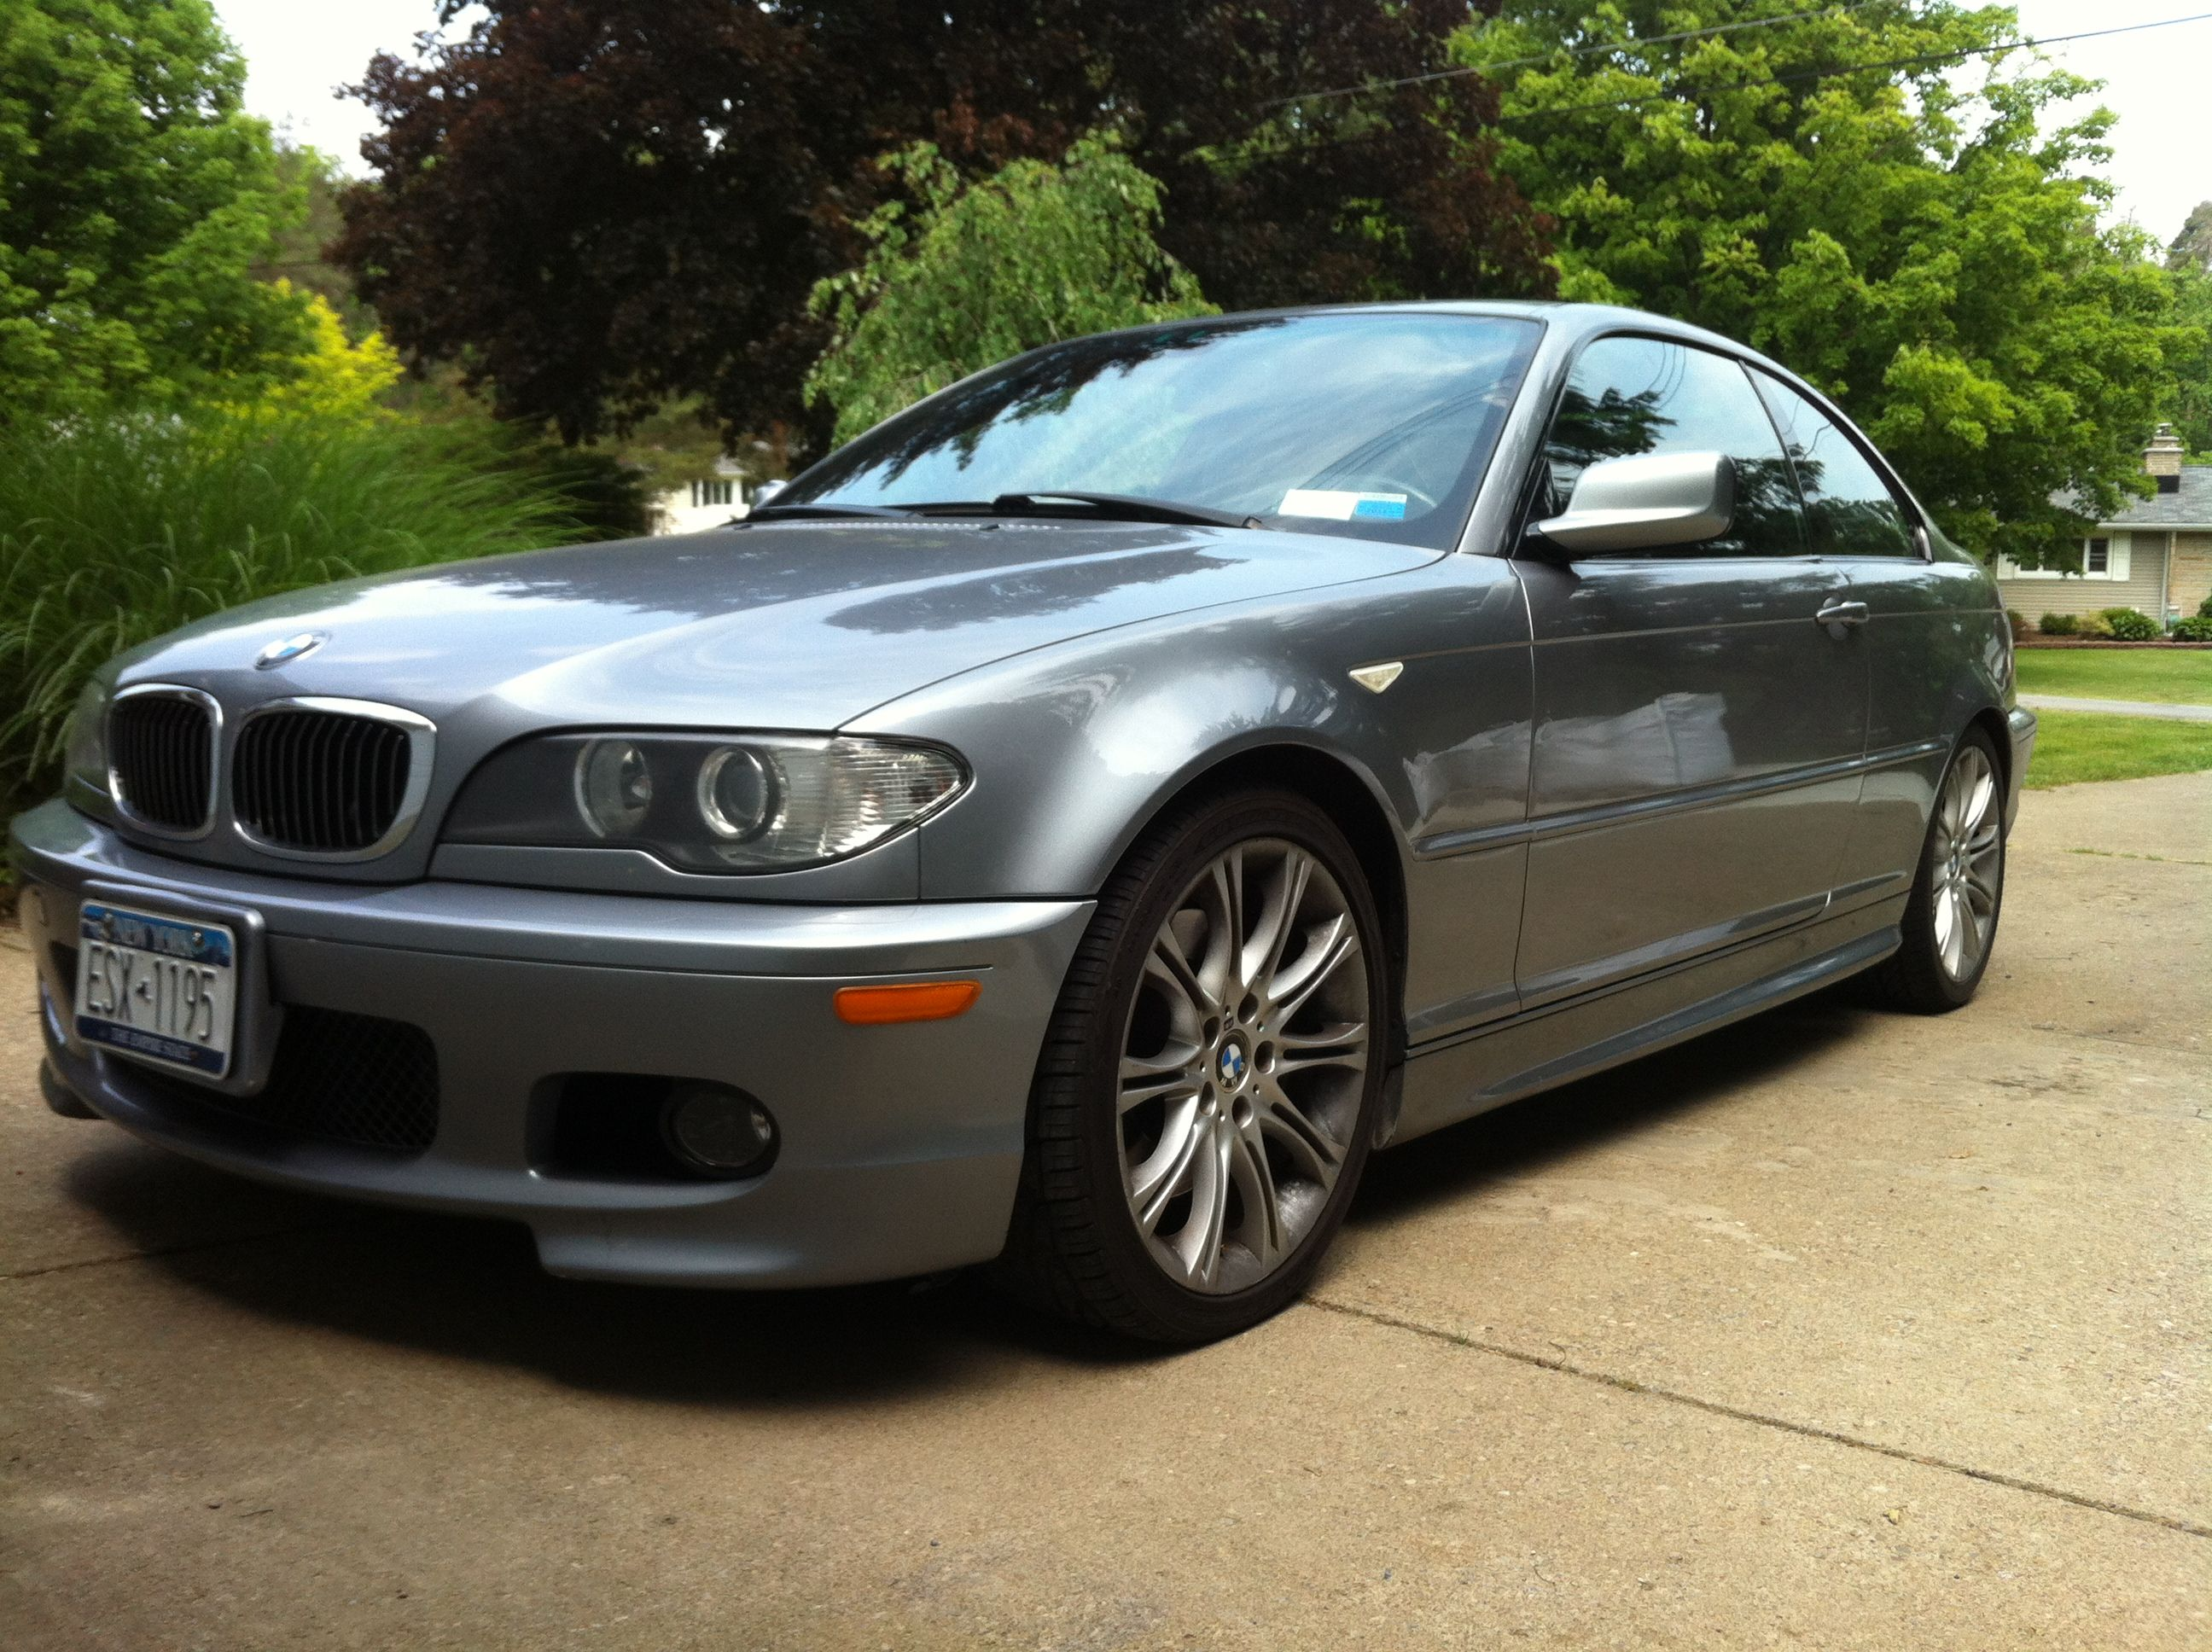 bmw 330ci zhp mine was a 330cic convertible in this color best car i ever owned  [ 2592 x 1936 Pixel ]